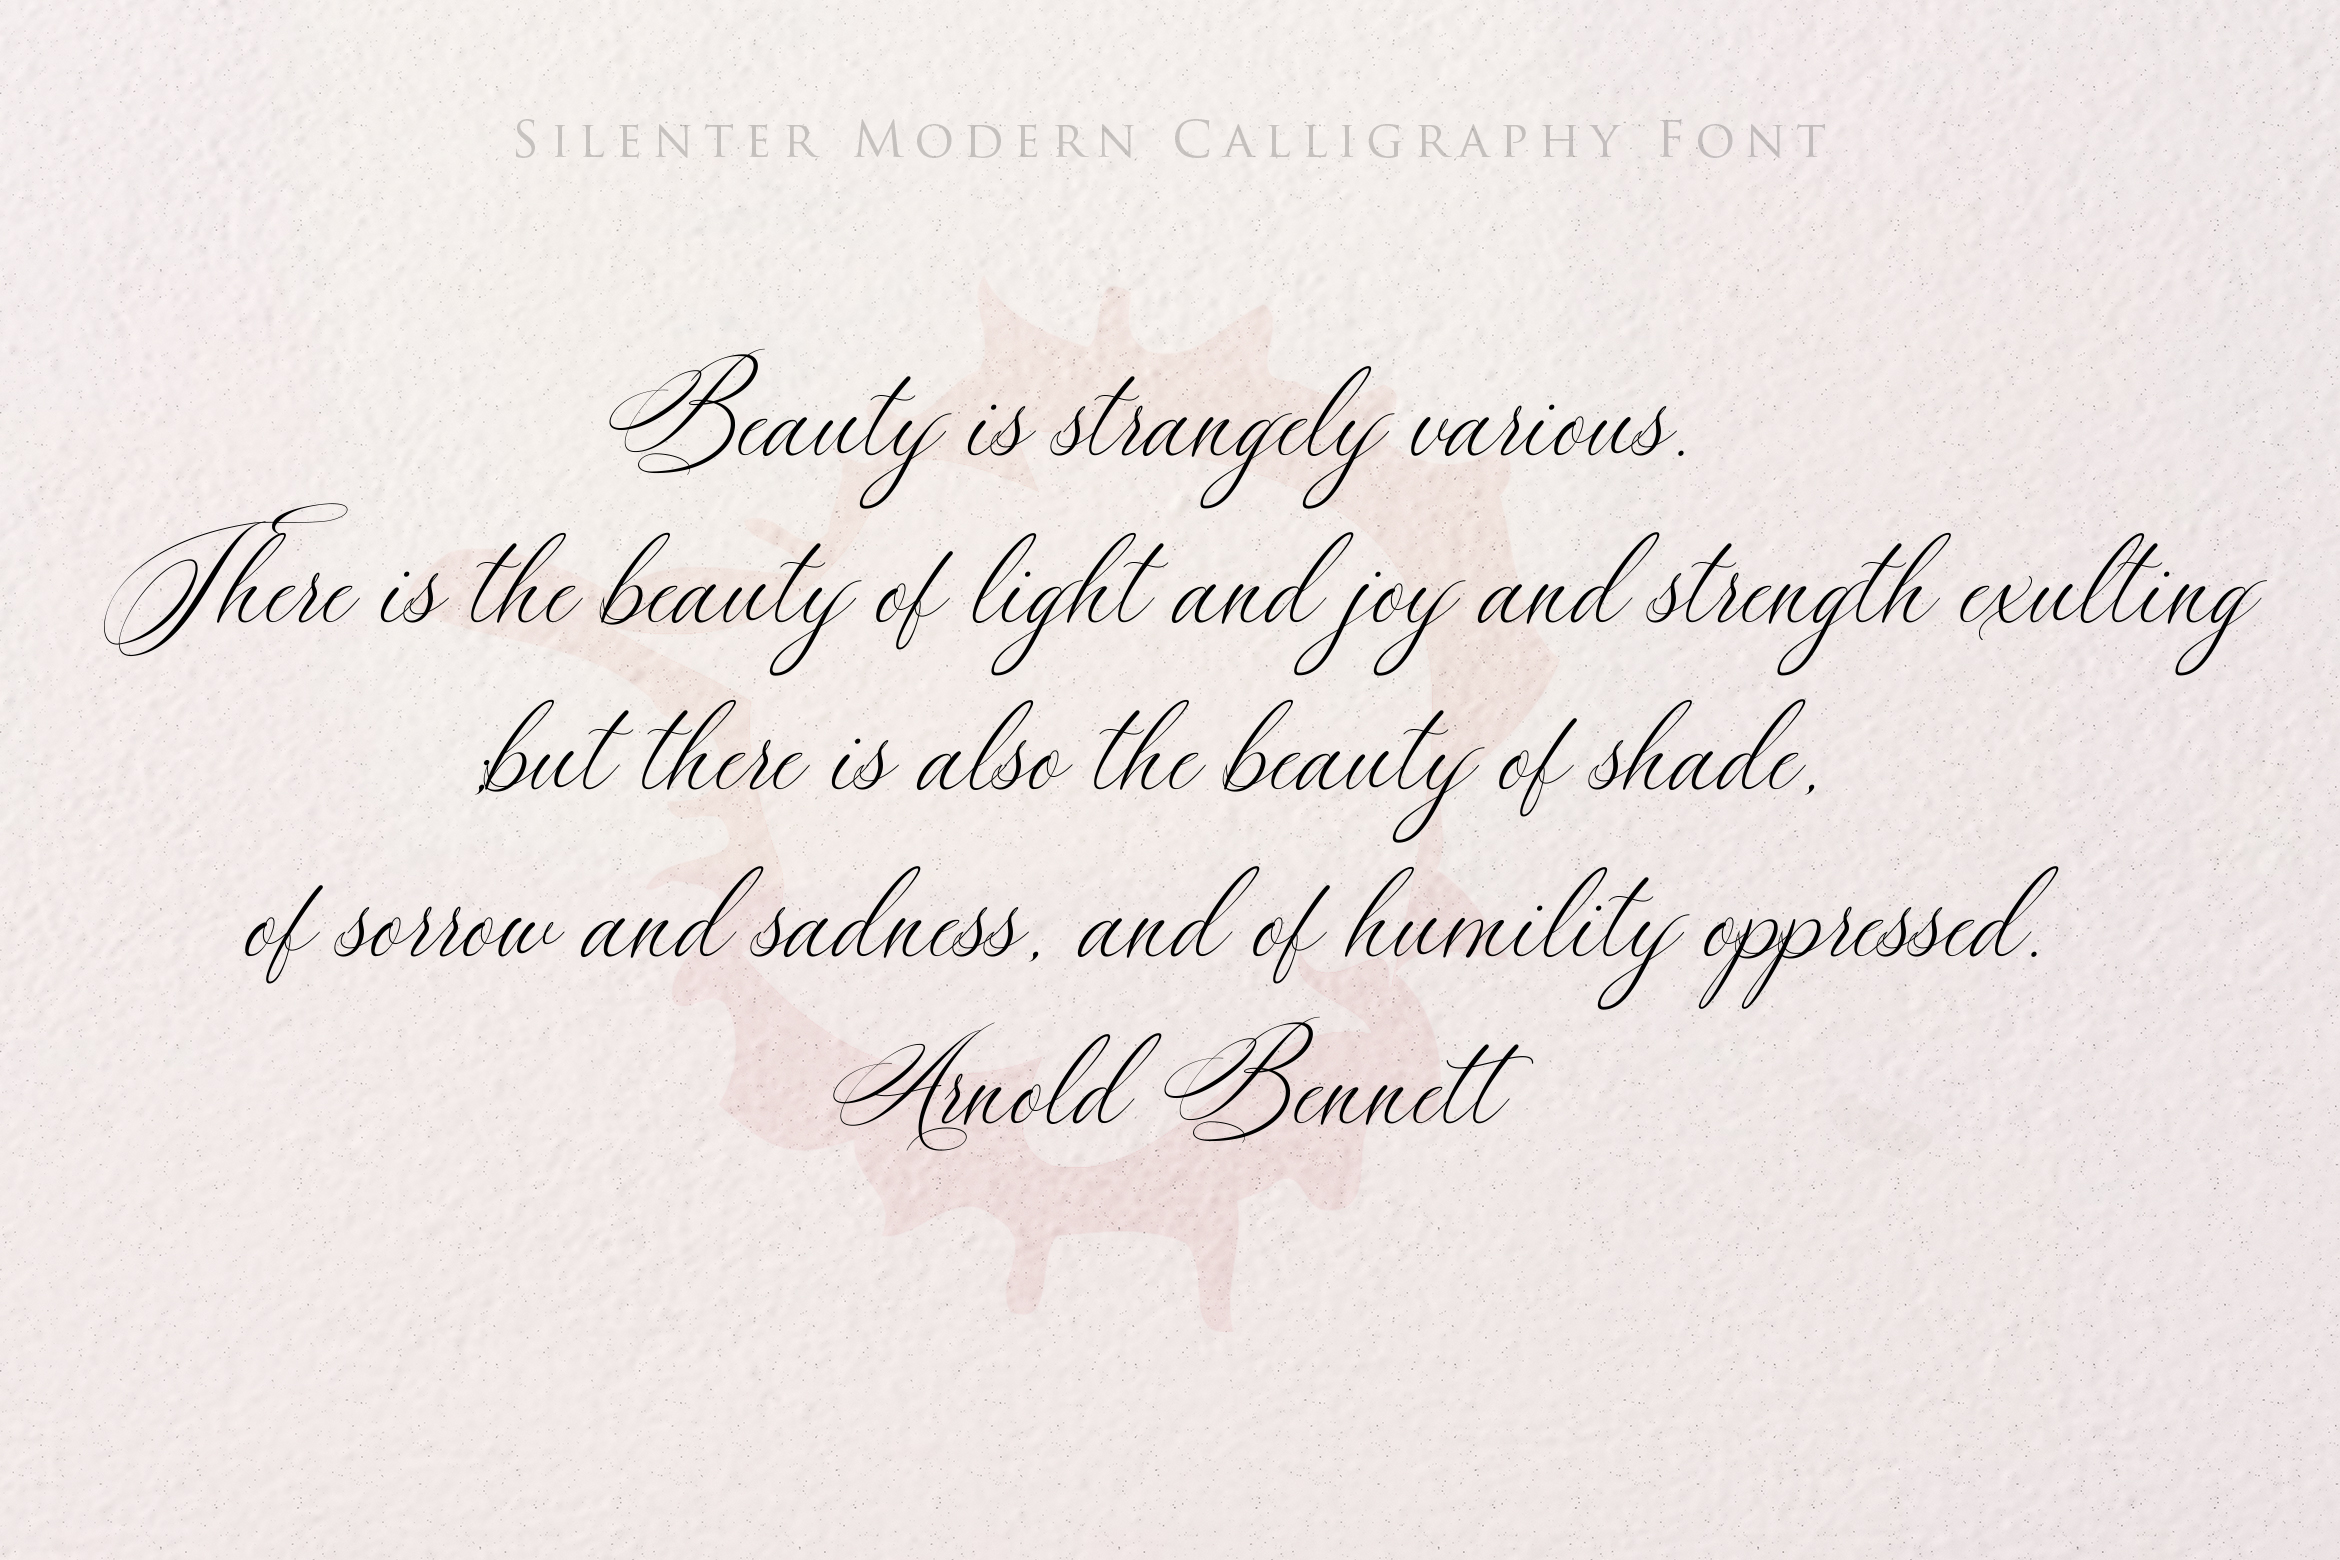 Silenter / Modern Calligraphy Font example image 4